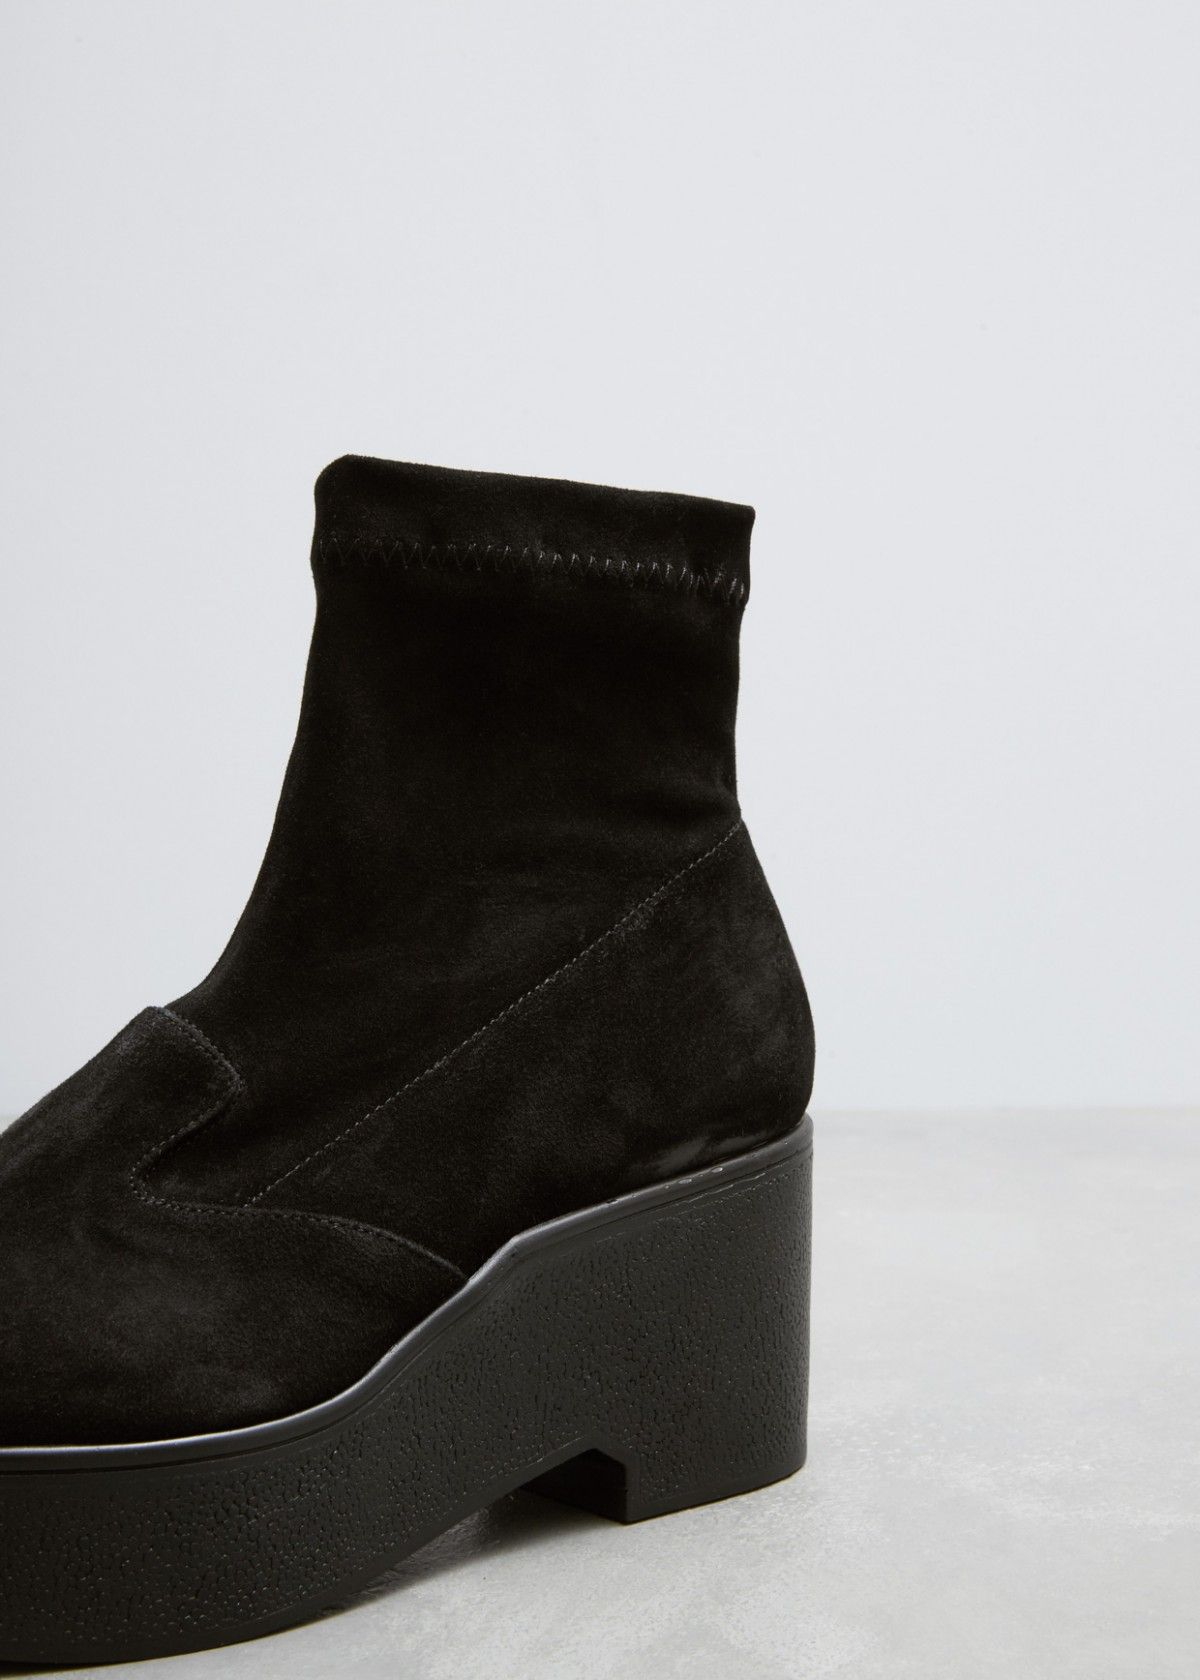 Wedge Boot Robert Shoes Ankle Slip Clergerie On Totokaelo TBqPSI